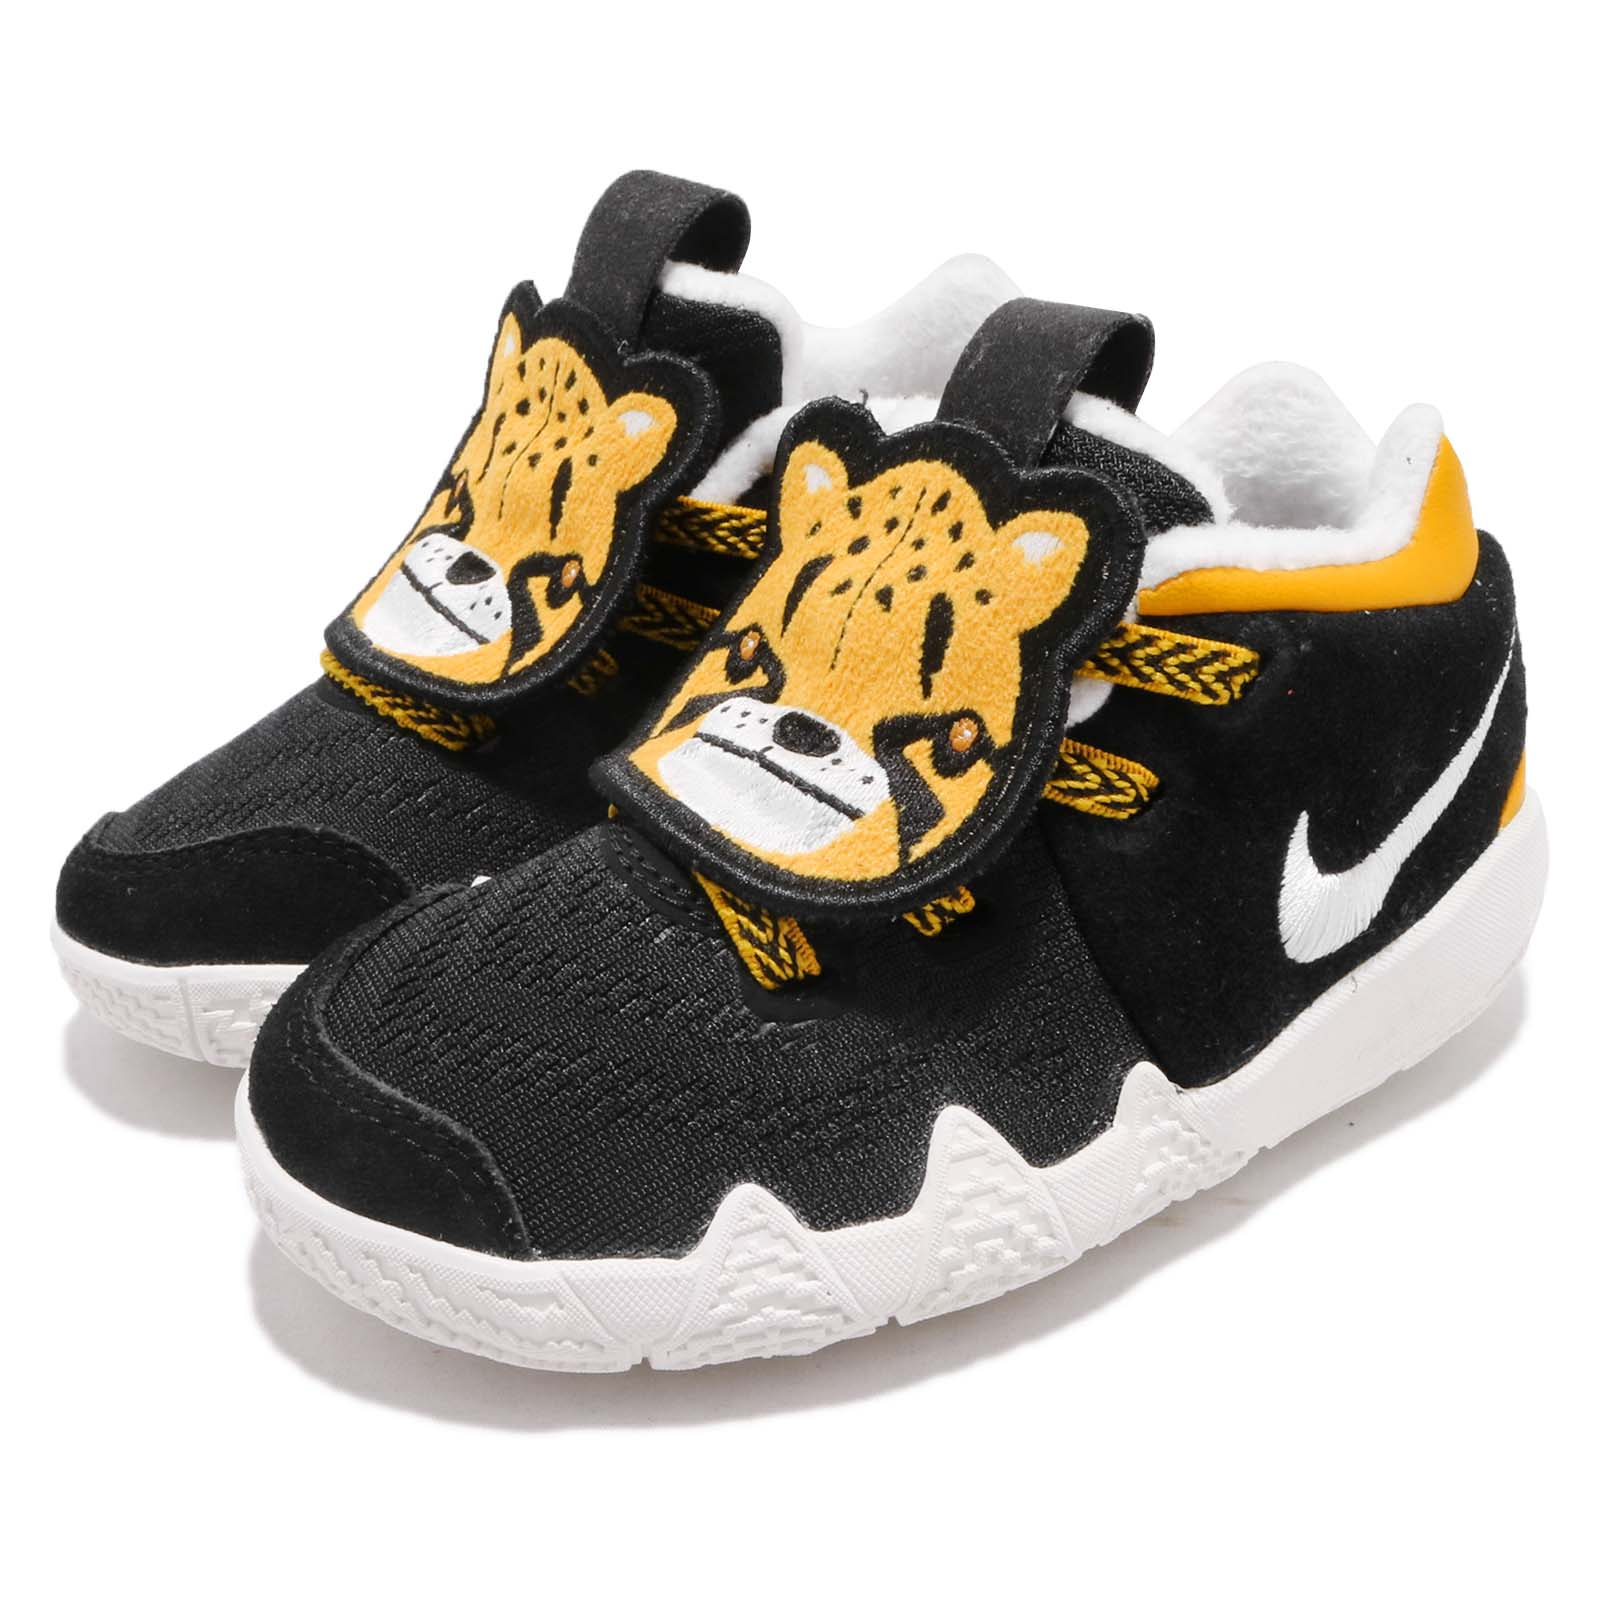 black and yellow kyrie 4